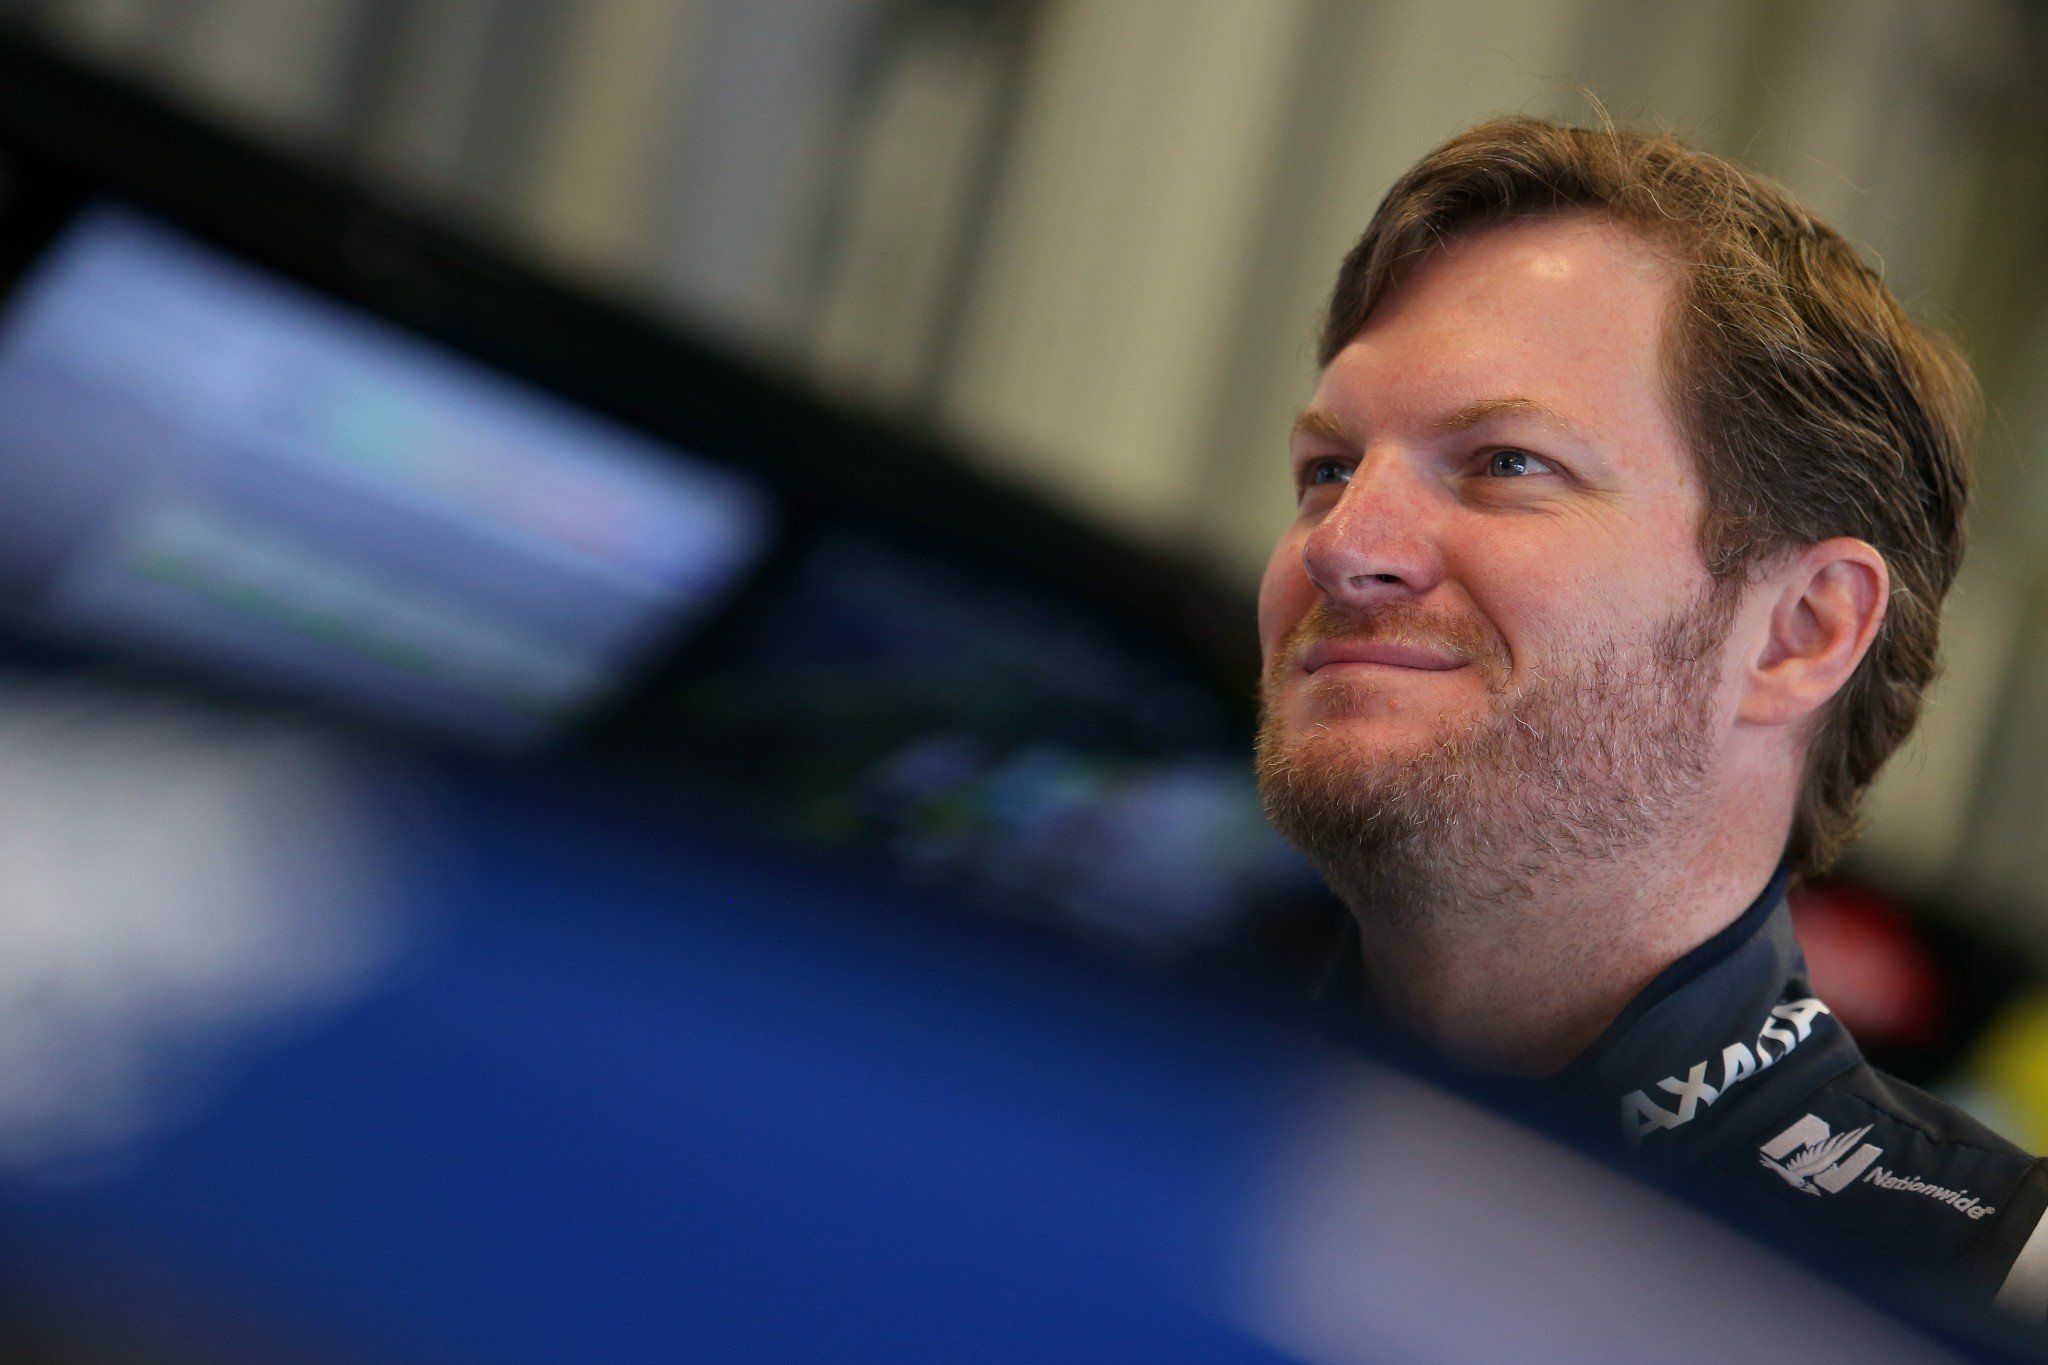 Dale Earnhardt Jr. is out indefinitely because of concussion concerns (Getty).